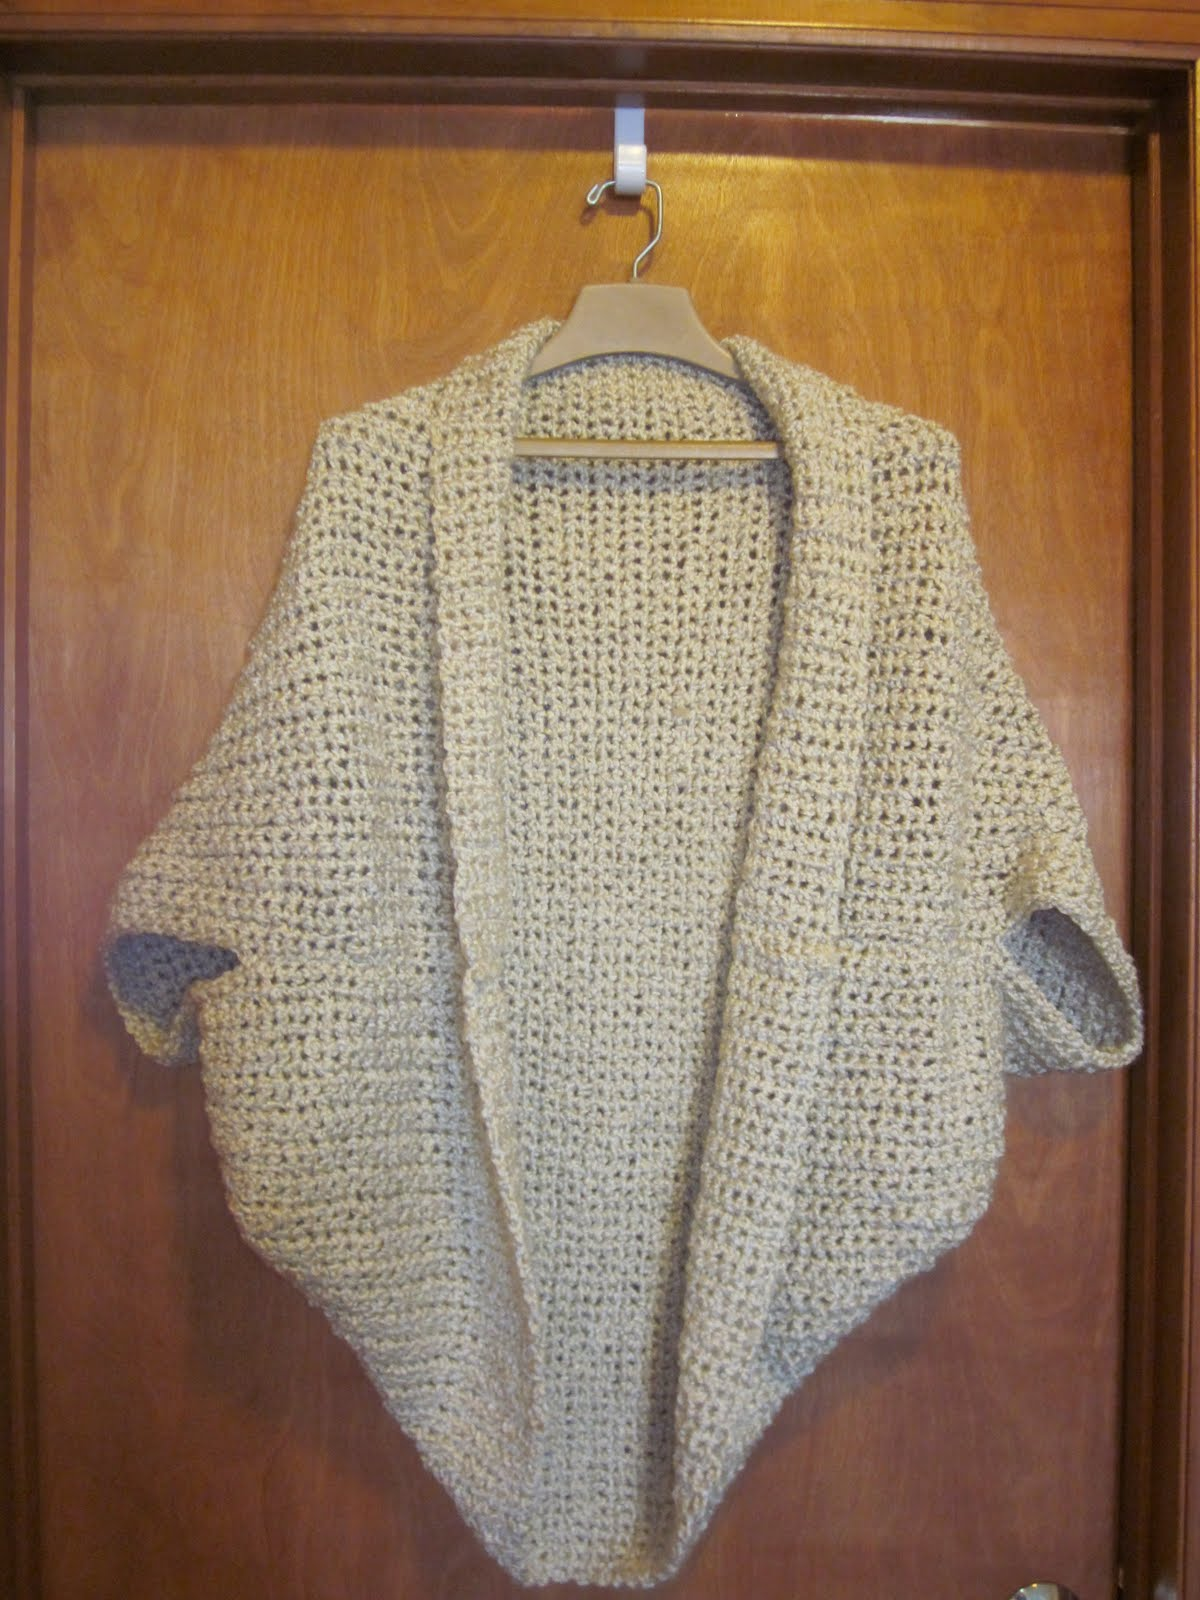 Crochet X-Stitch Shrug Free Pattern : My version of the lionbrand crochet shrug: